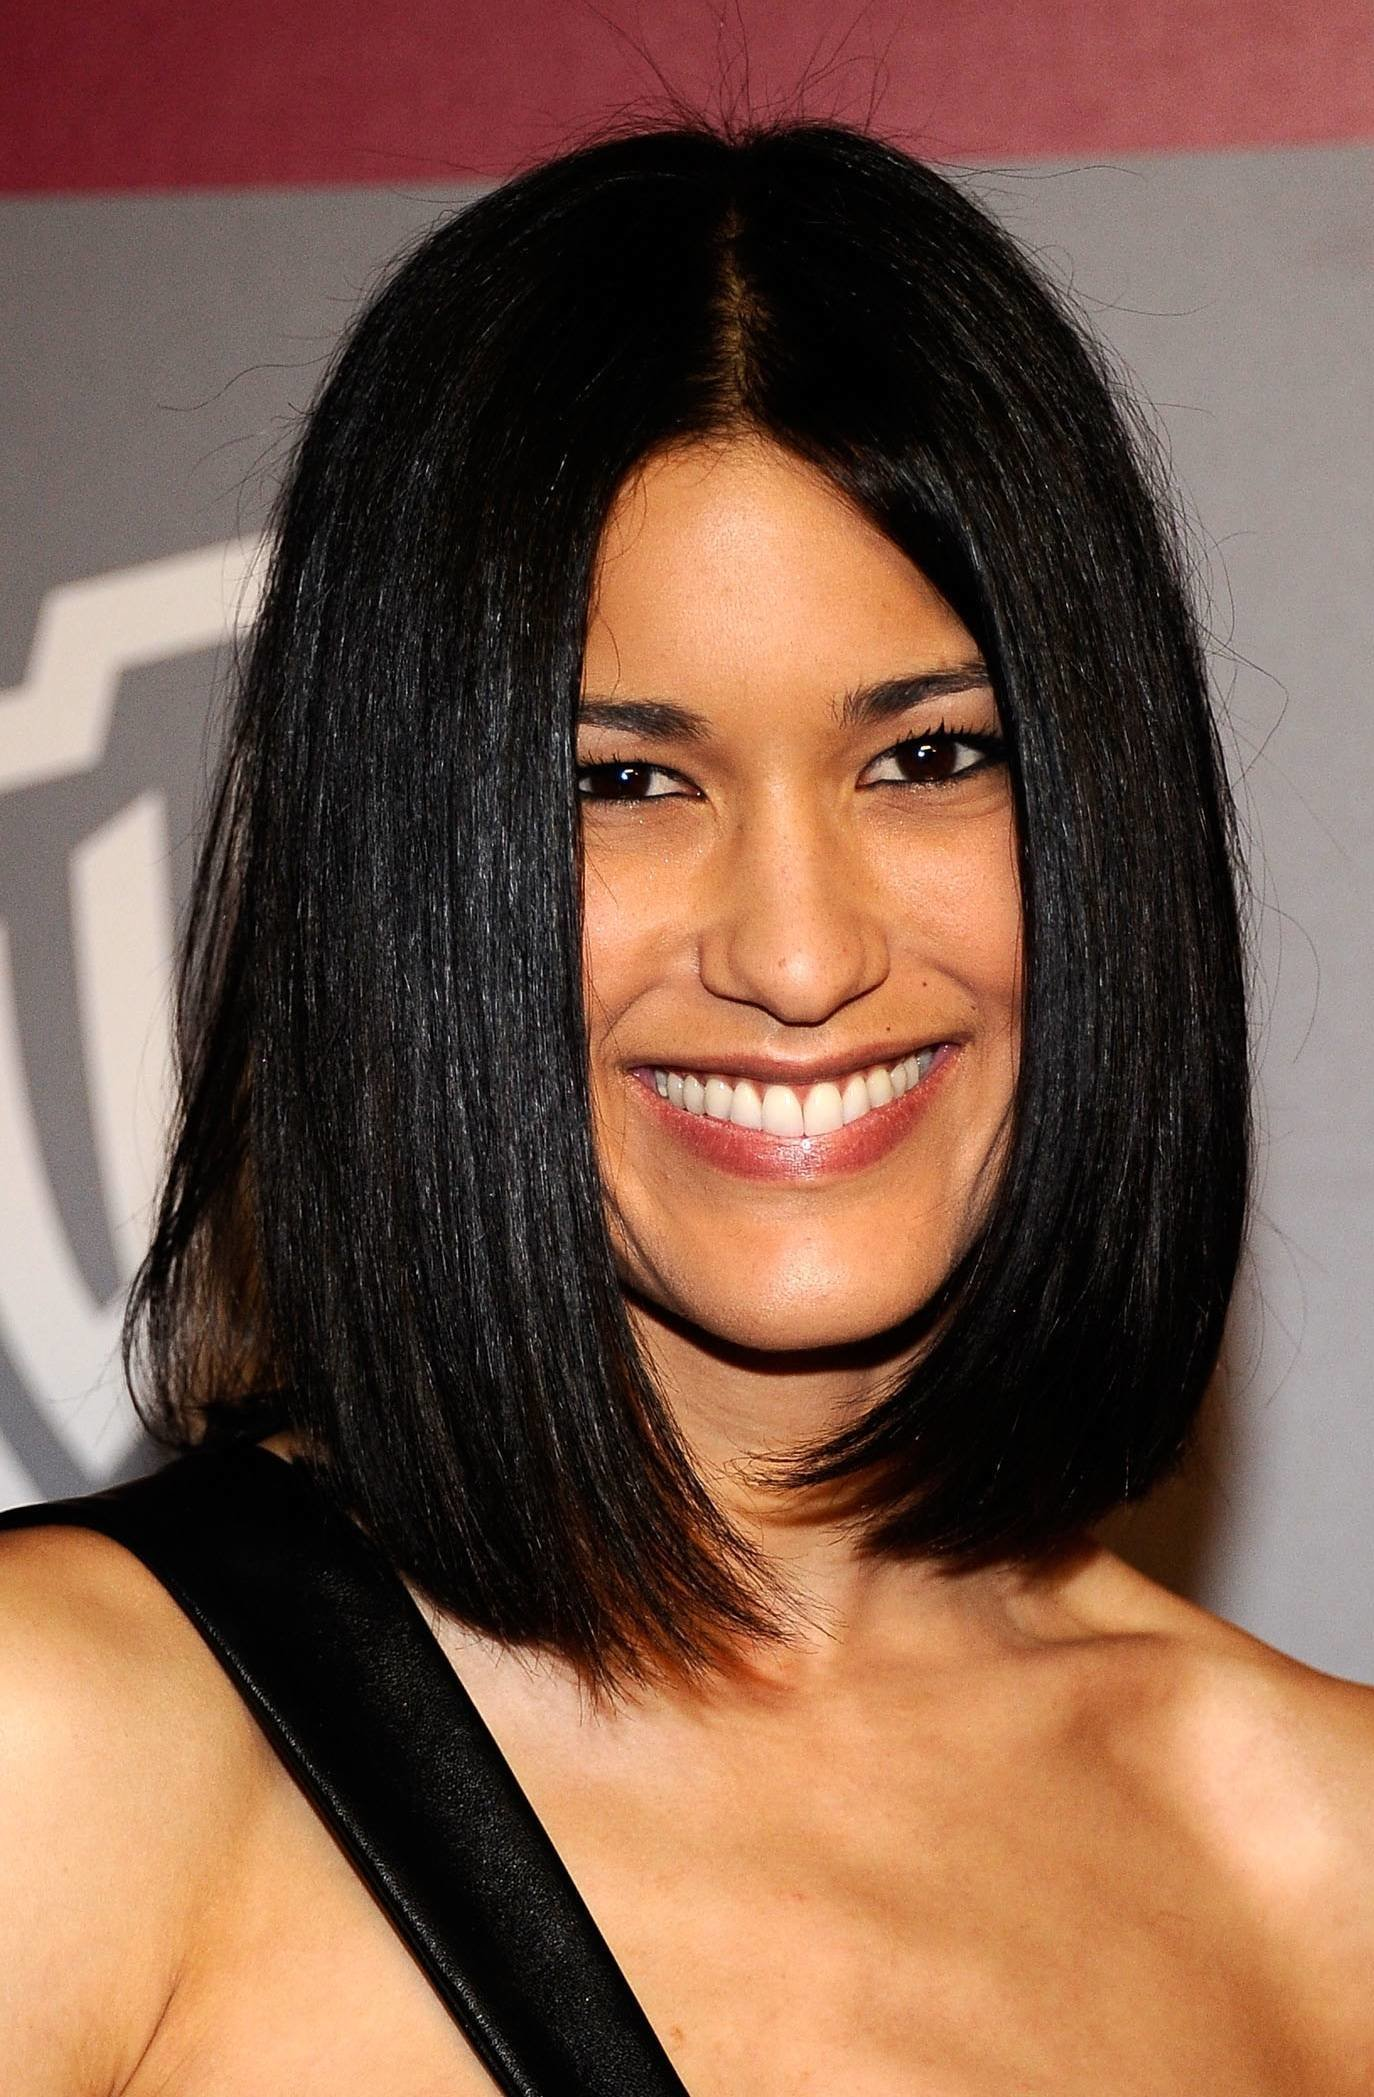 The Best The Long Bob Haircut The Lob Vs The Extra Long Hair Pictures